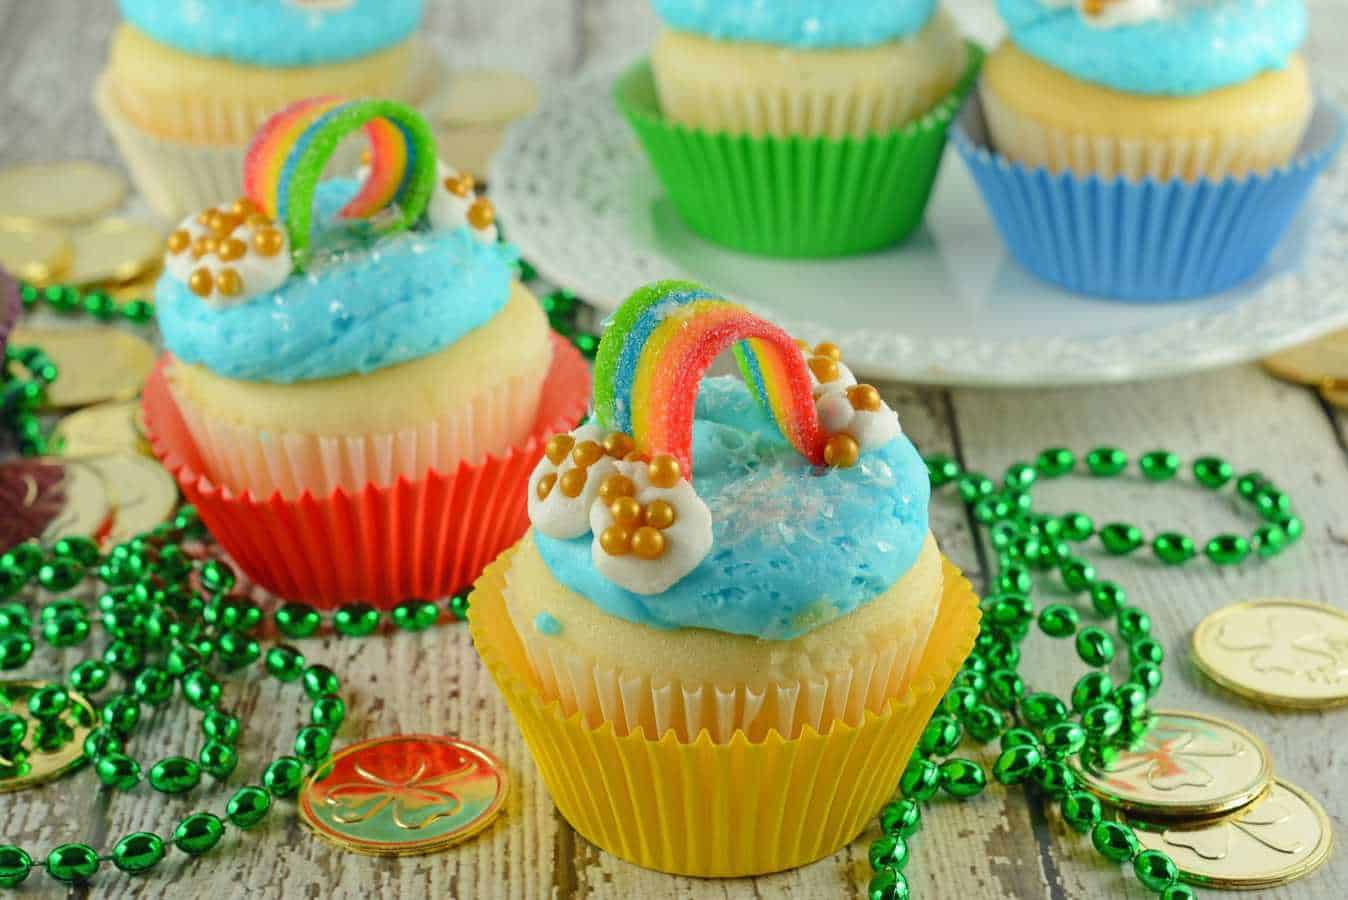 RaRainbow Cupcakes are super easy and cute. The perfect cupcake for St. Patrick's Day, Children's Birthday Parties or any random day of the week!